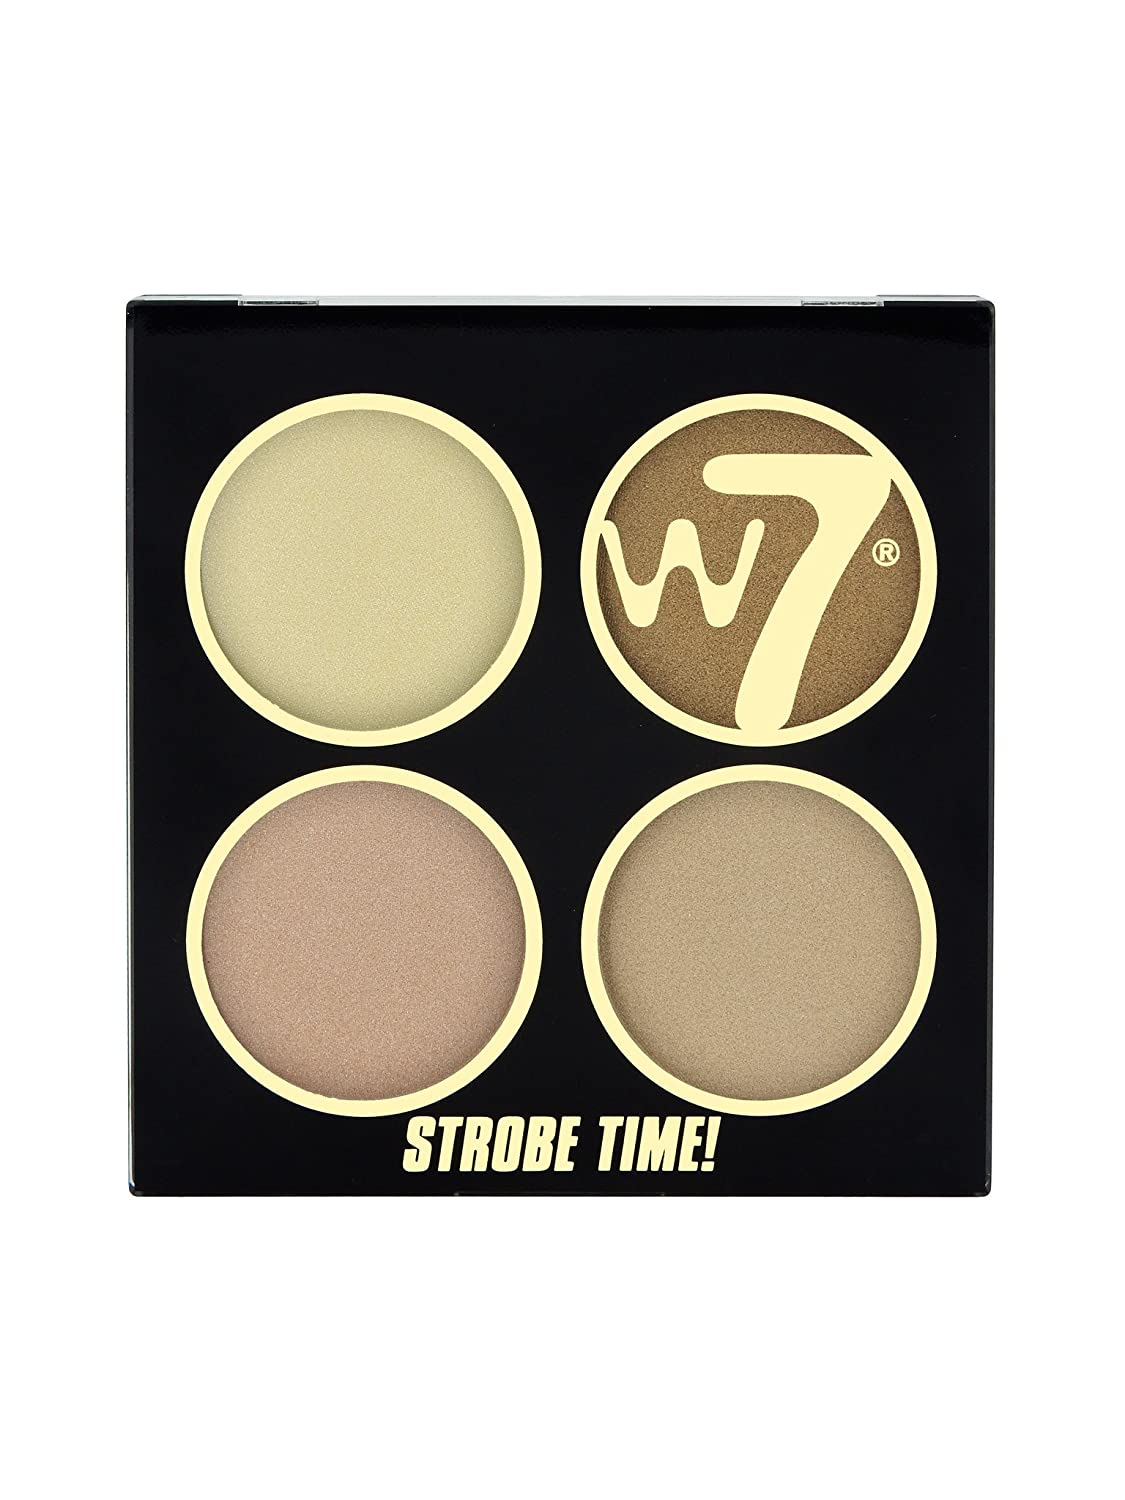 W7 It's Strobe Time Bronze Shimmering Powder Kit-Vivid Glow